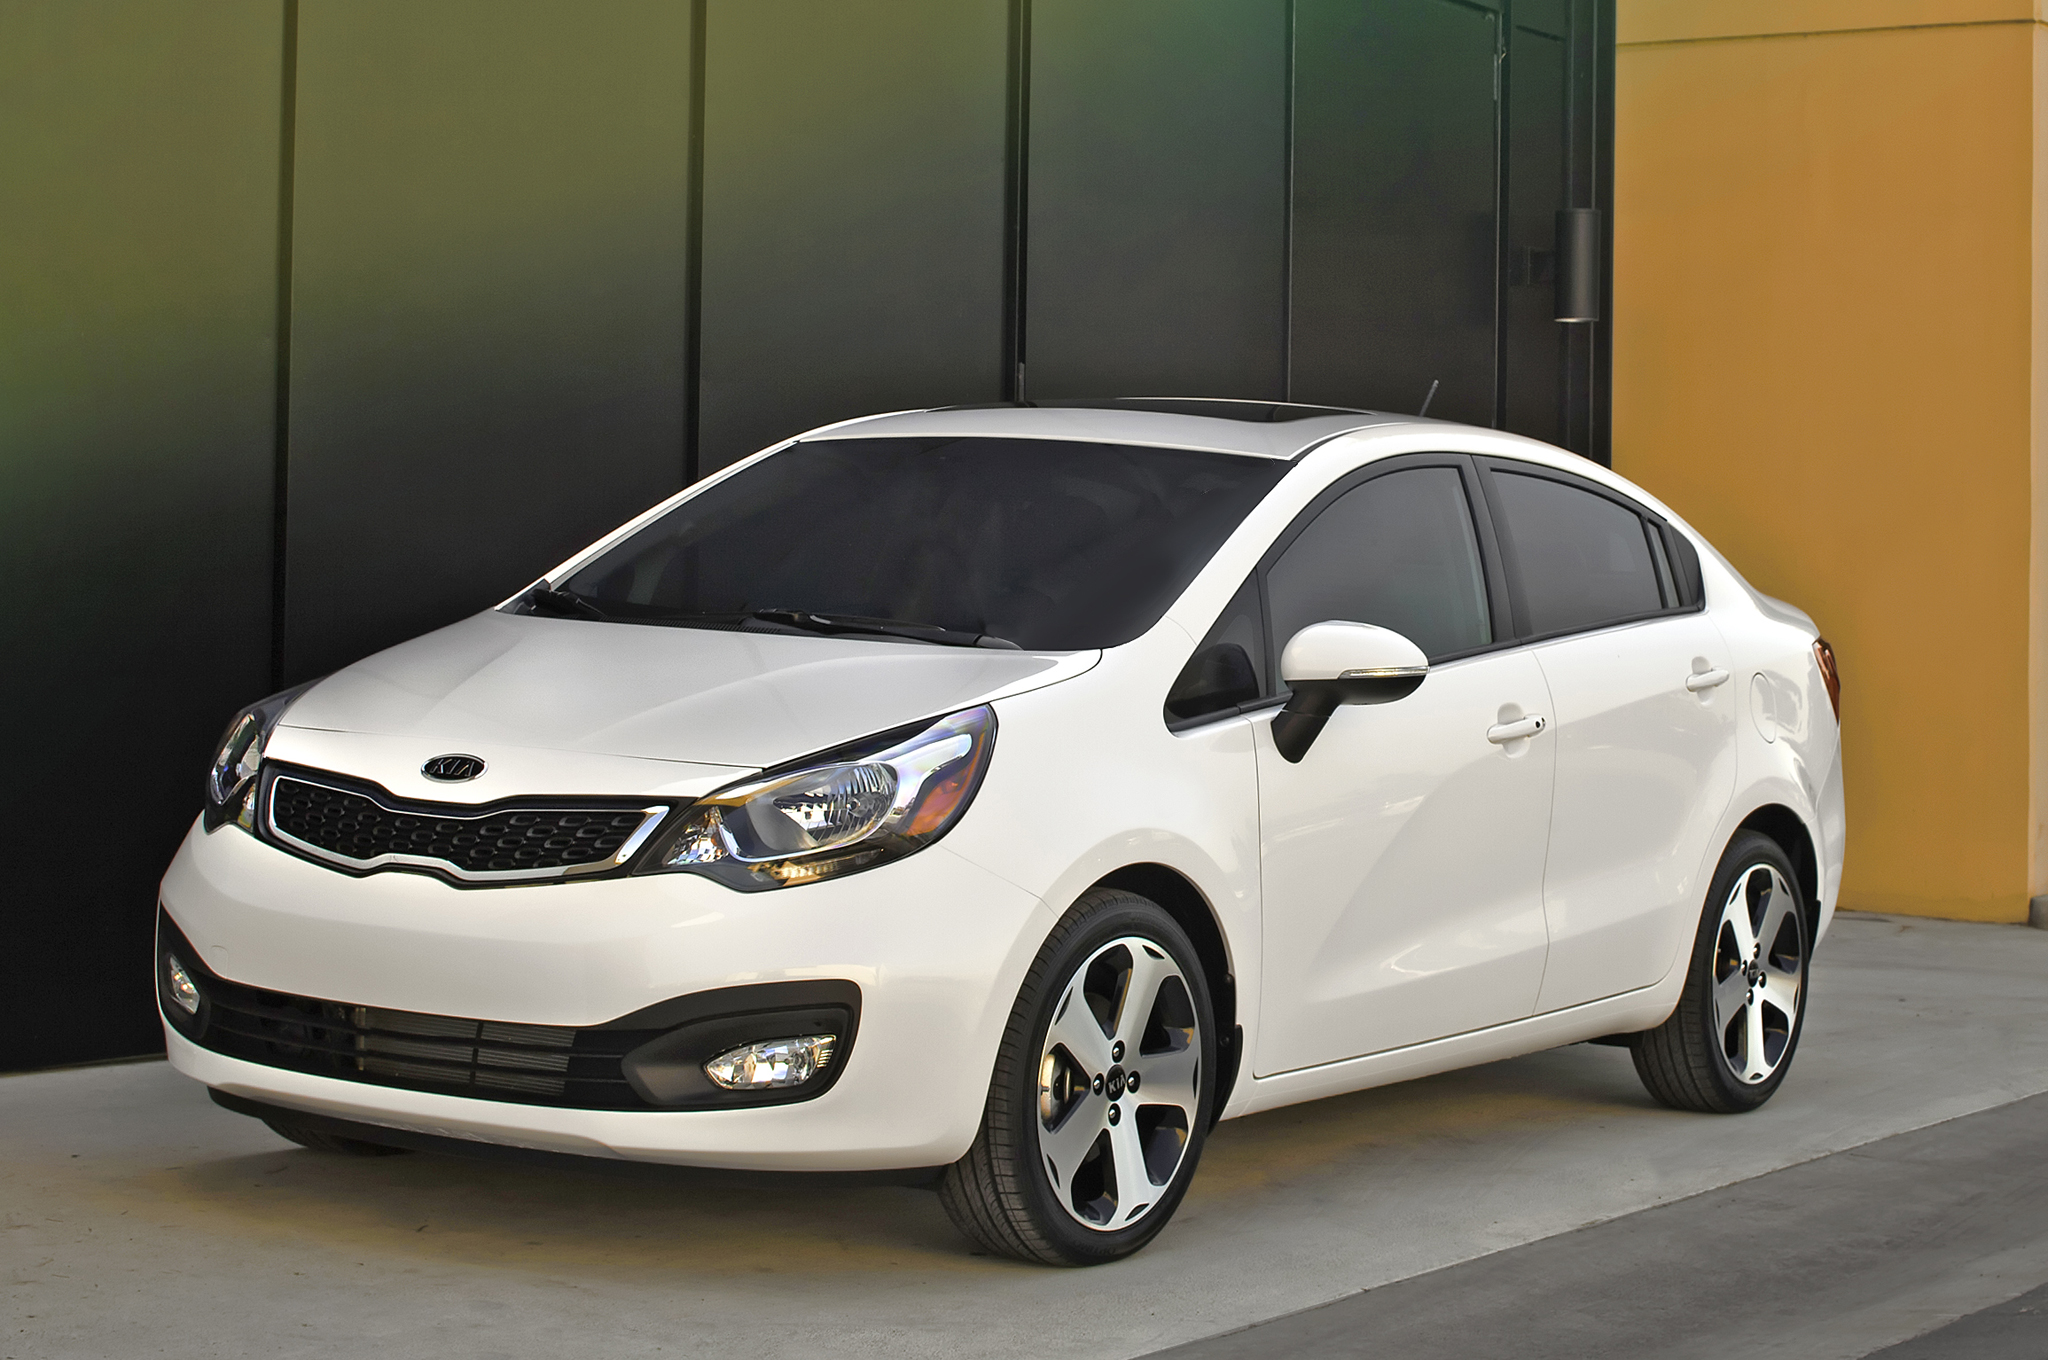 2014 Kia Rio Sedan Starts at $14,600, Rio Hatchback is $100 More ...